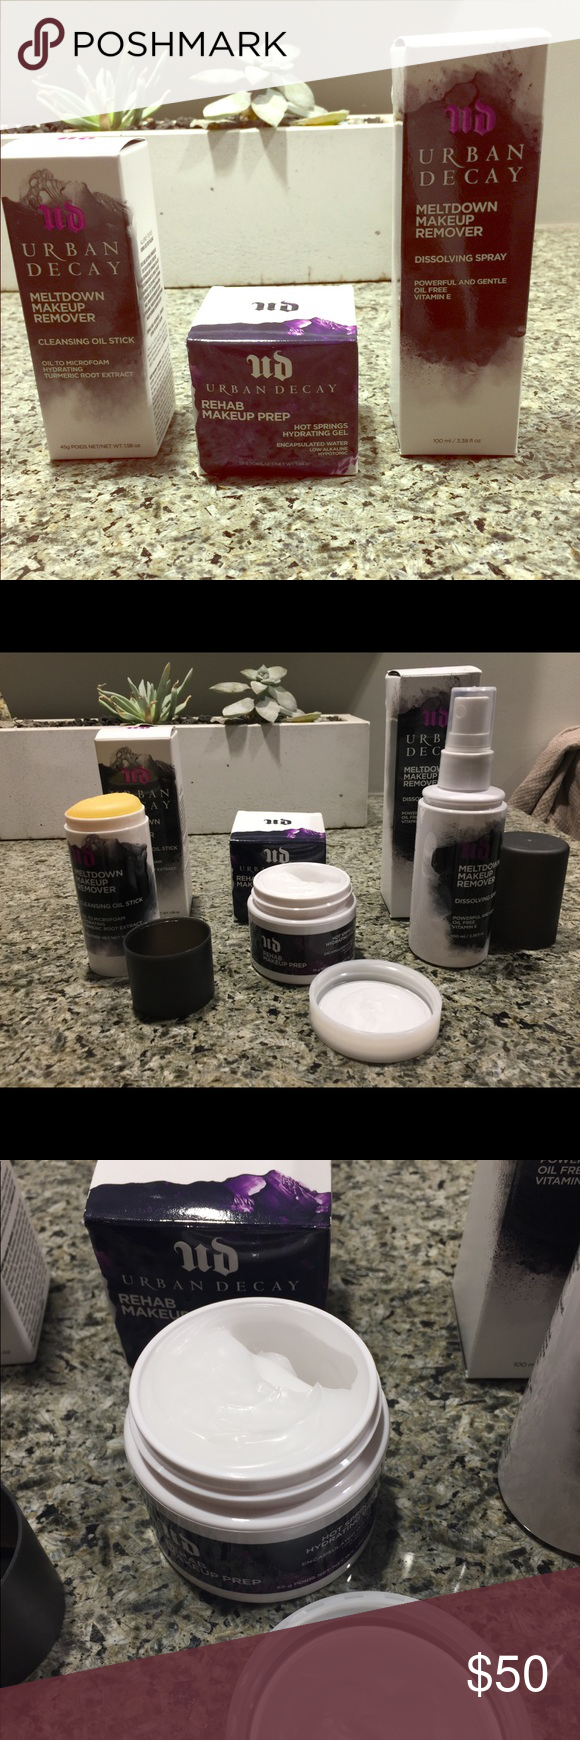 Urban Decay Meltdown Remover and Rehab Makeup Prep 3 full